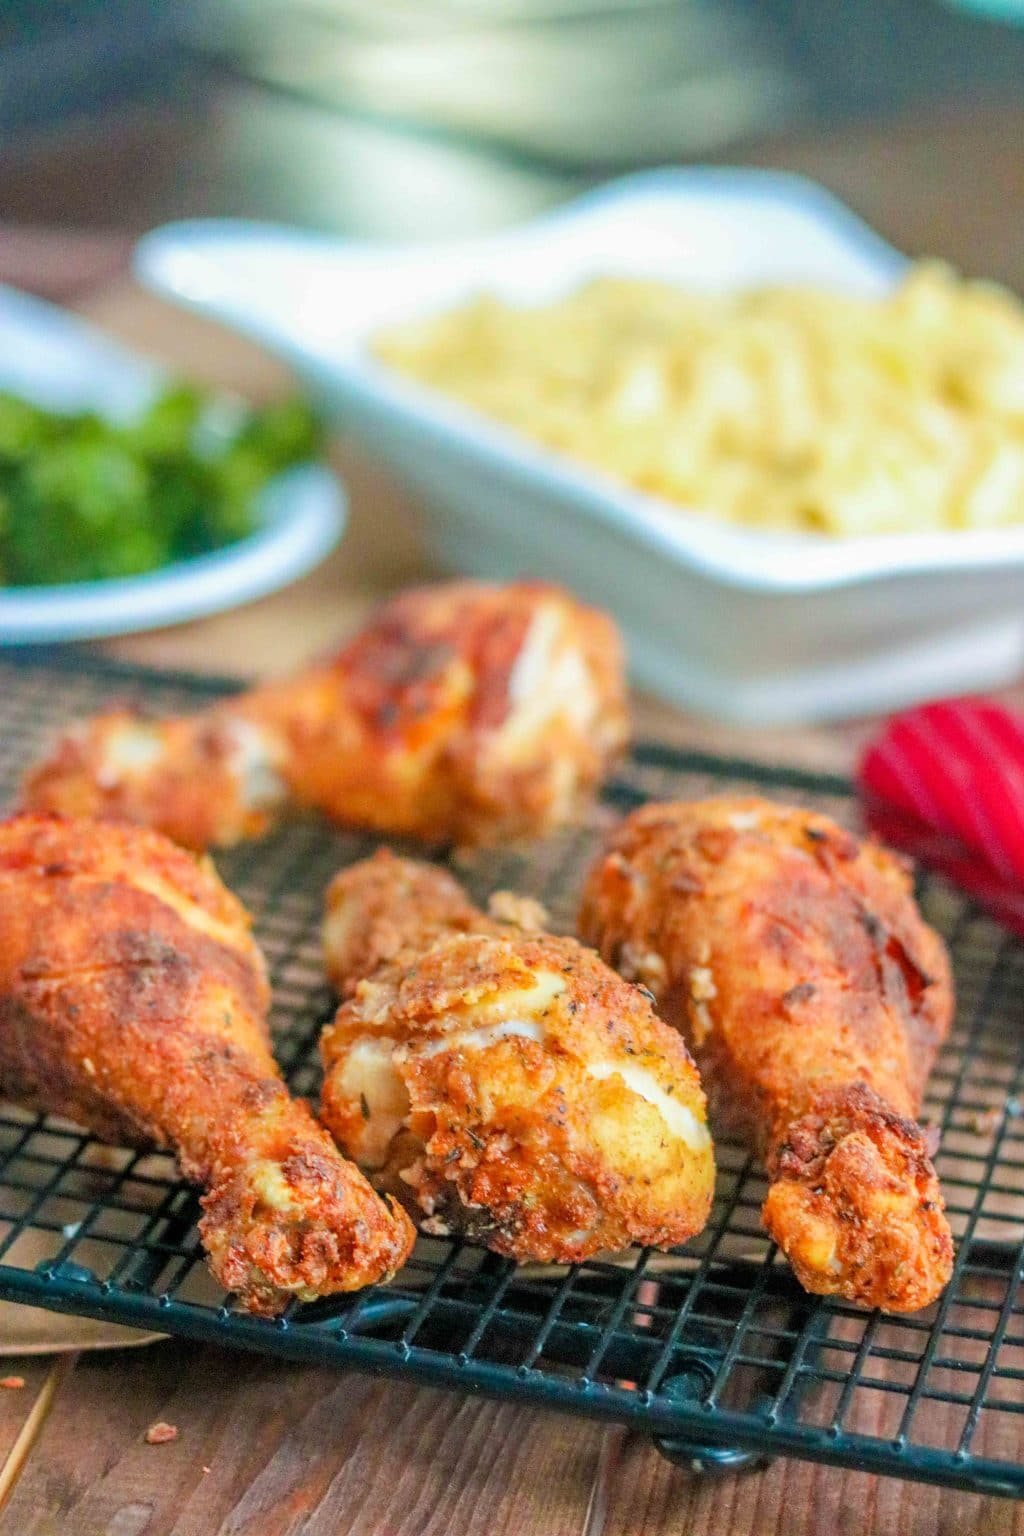 Closeup of oven fried chicken drumsticks on cooling rack with macaroni and cheese in background.